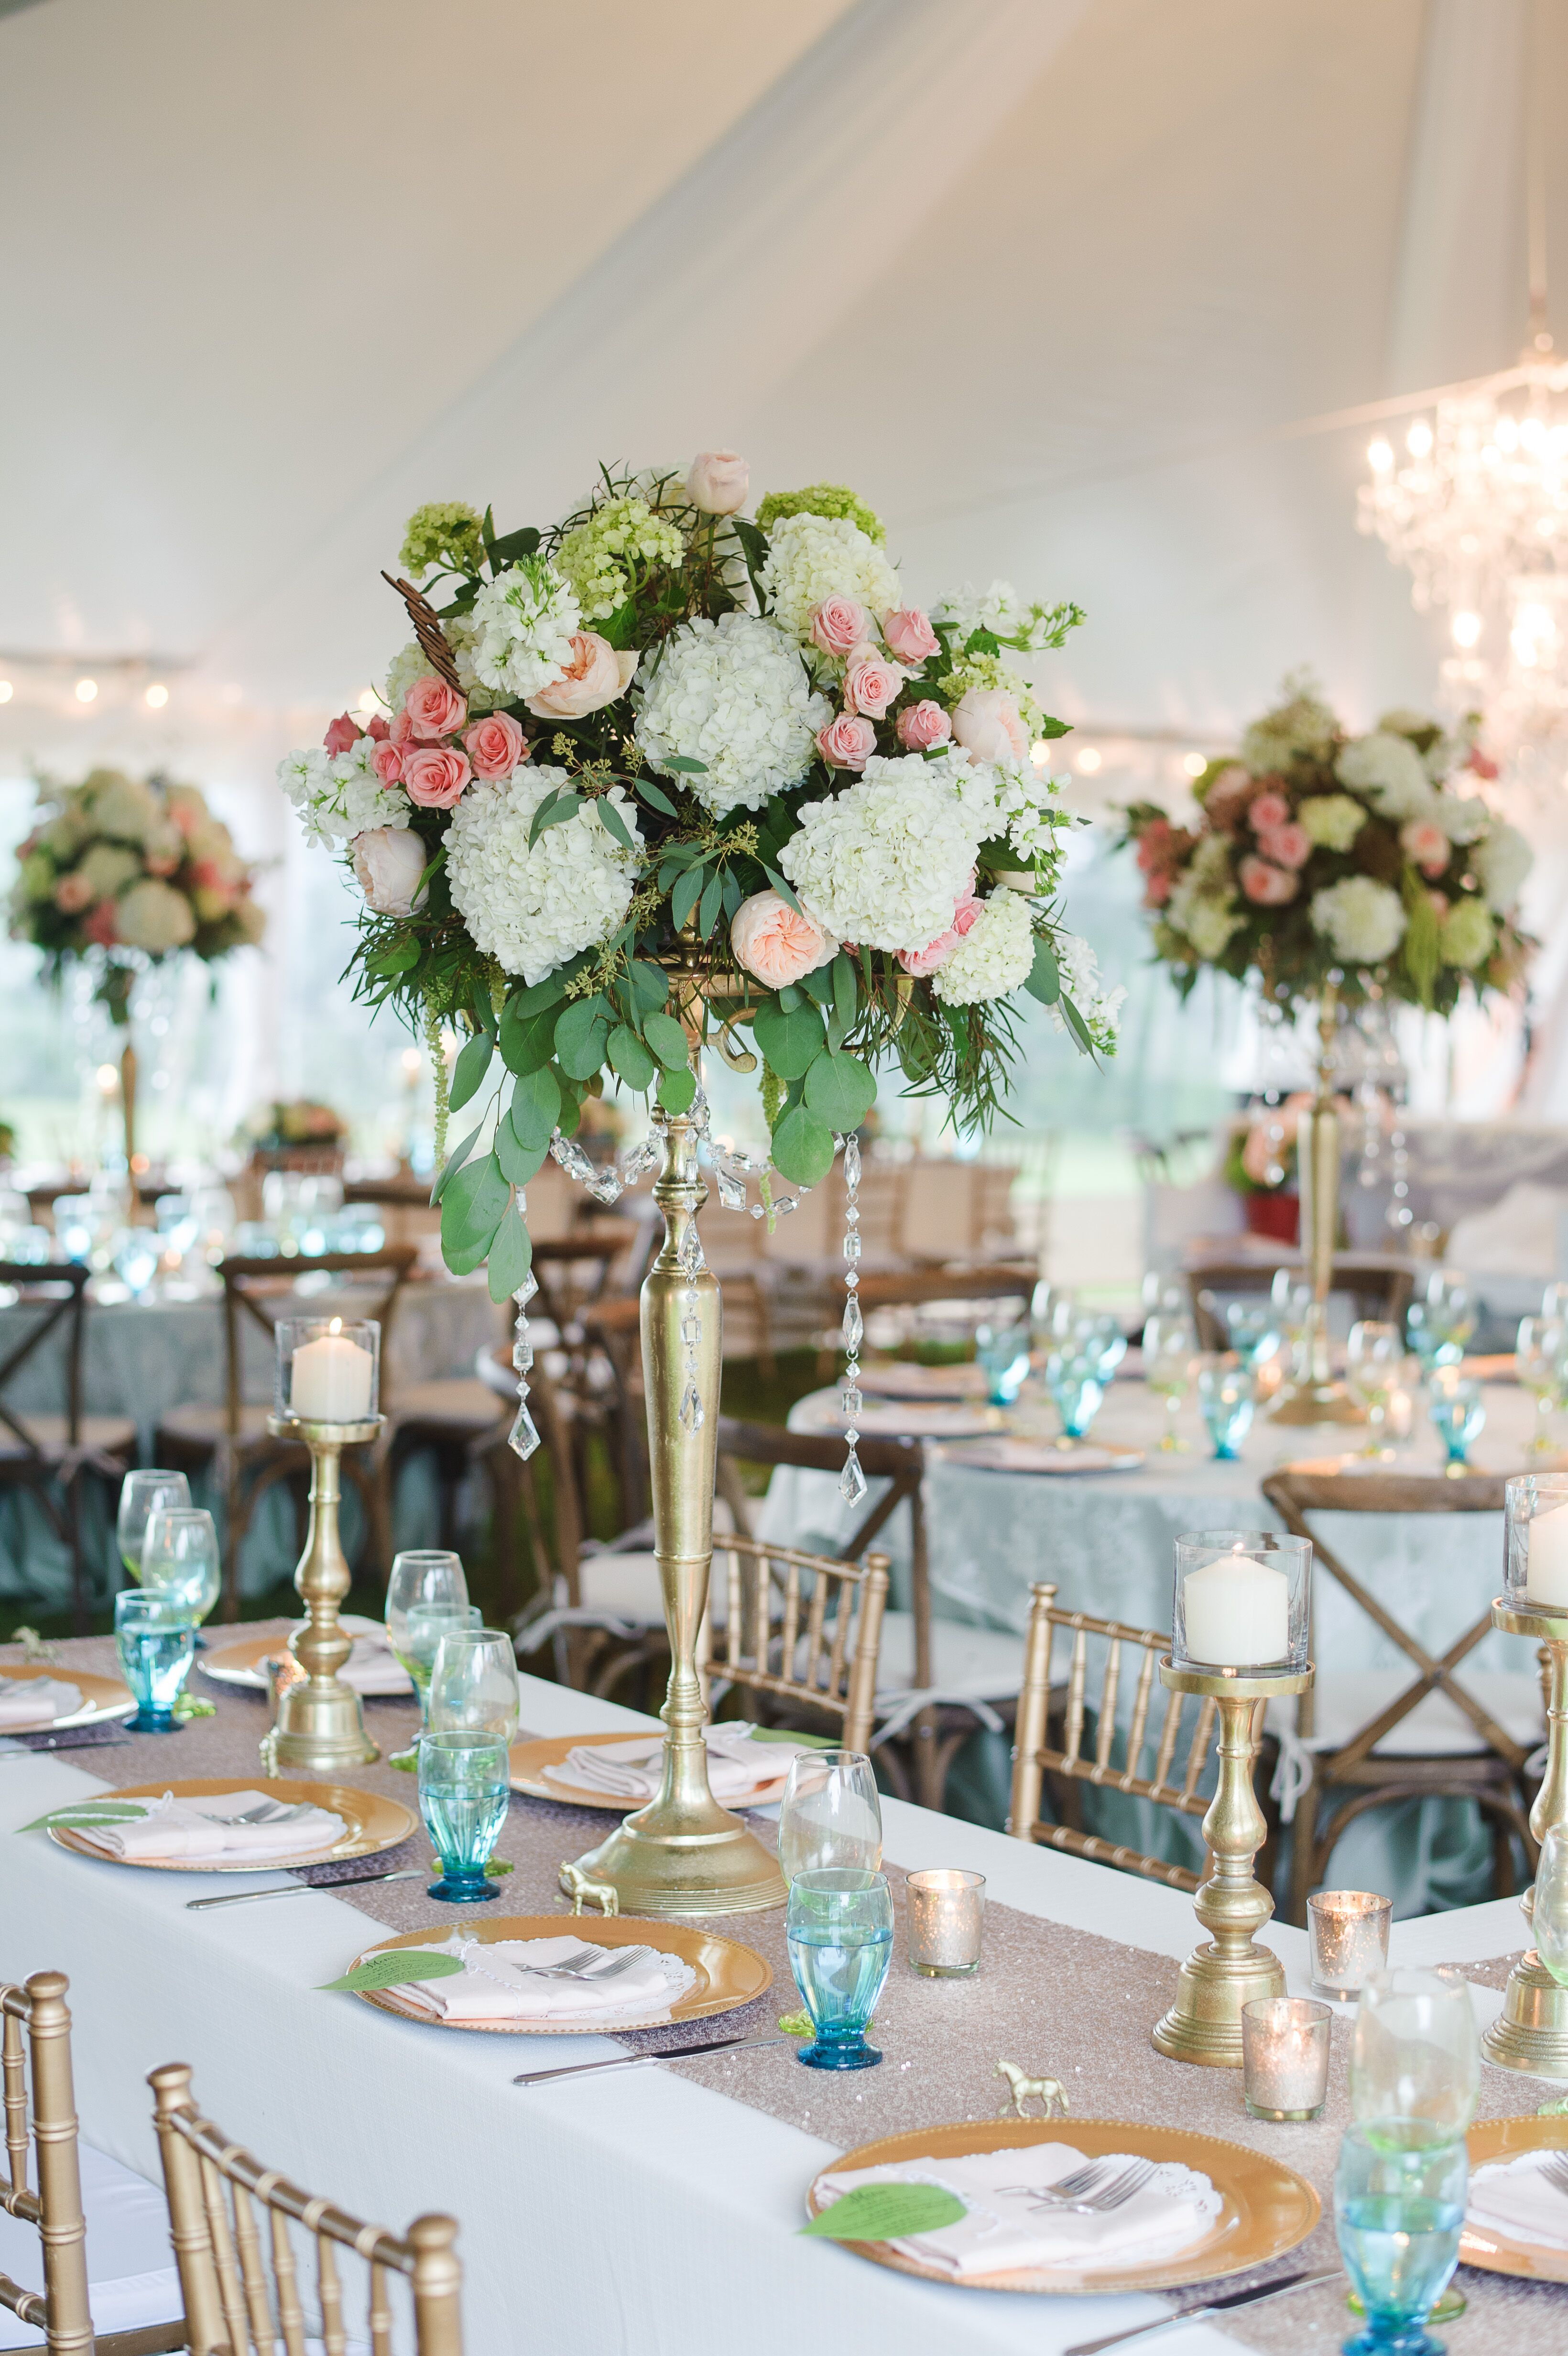 Tall white and blush centerpieces with gold accents